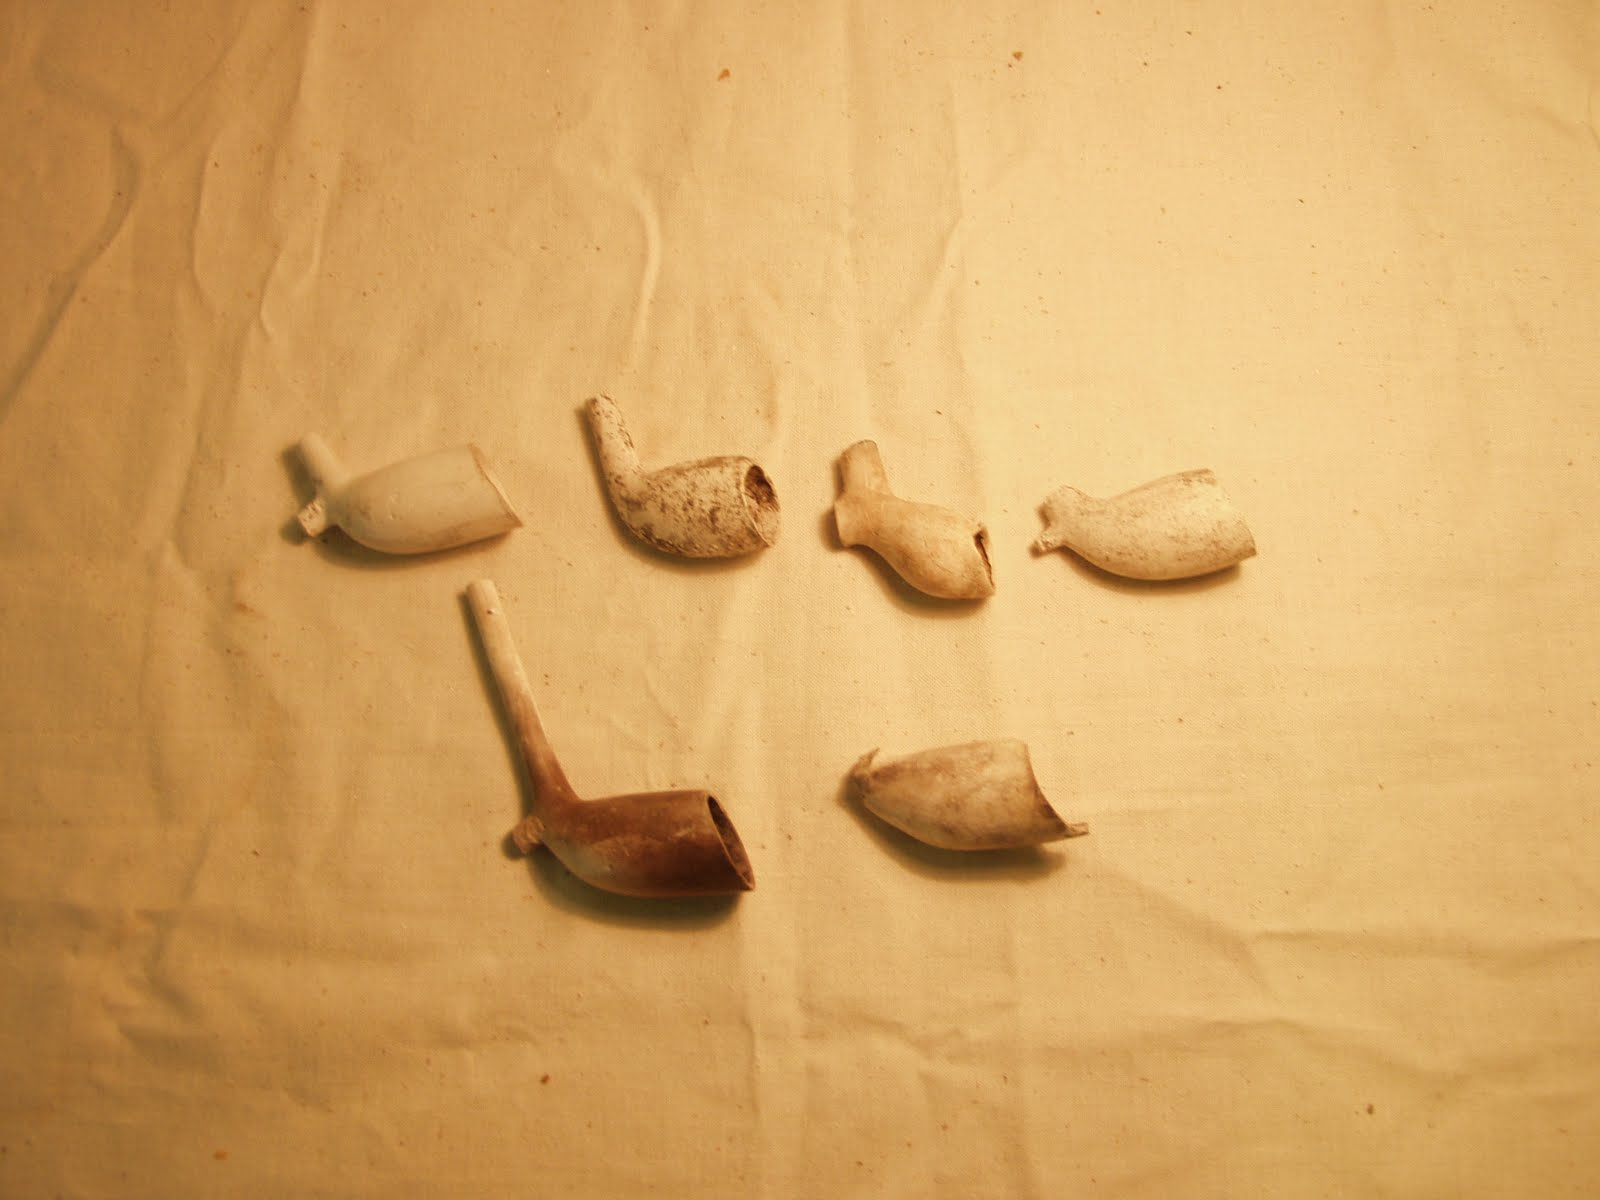 dating clay pipes for sale